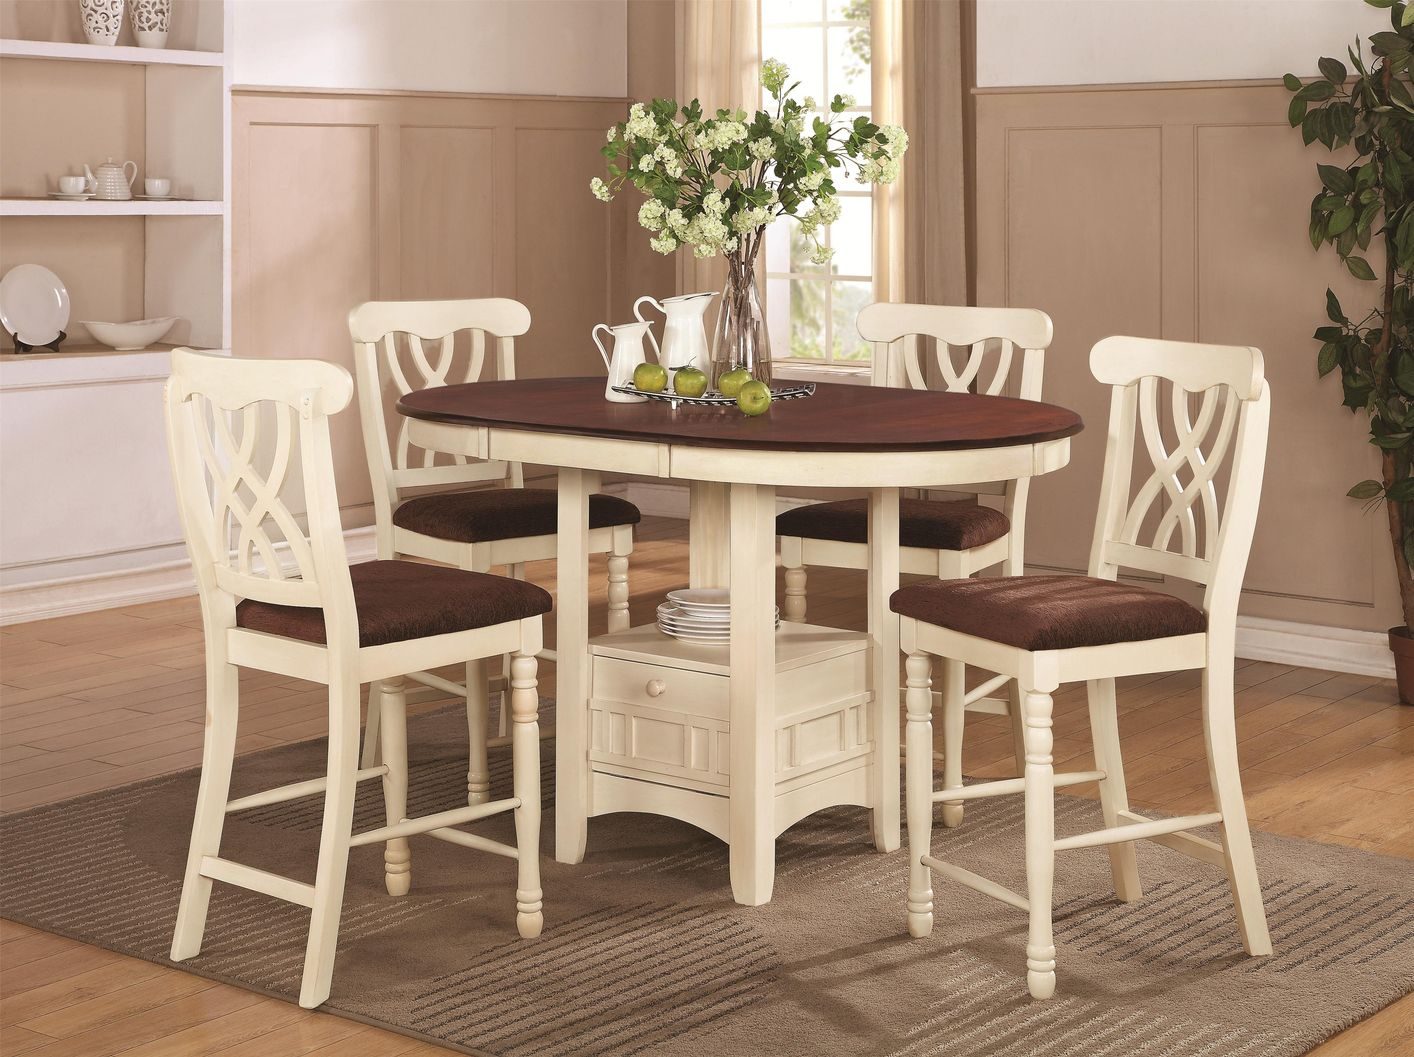 Cream Pedestal Kitchen Table